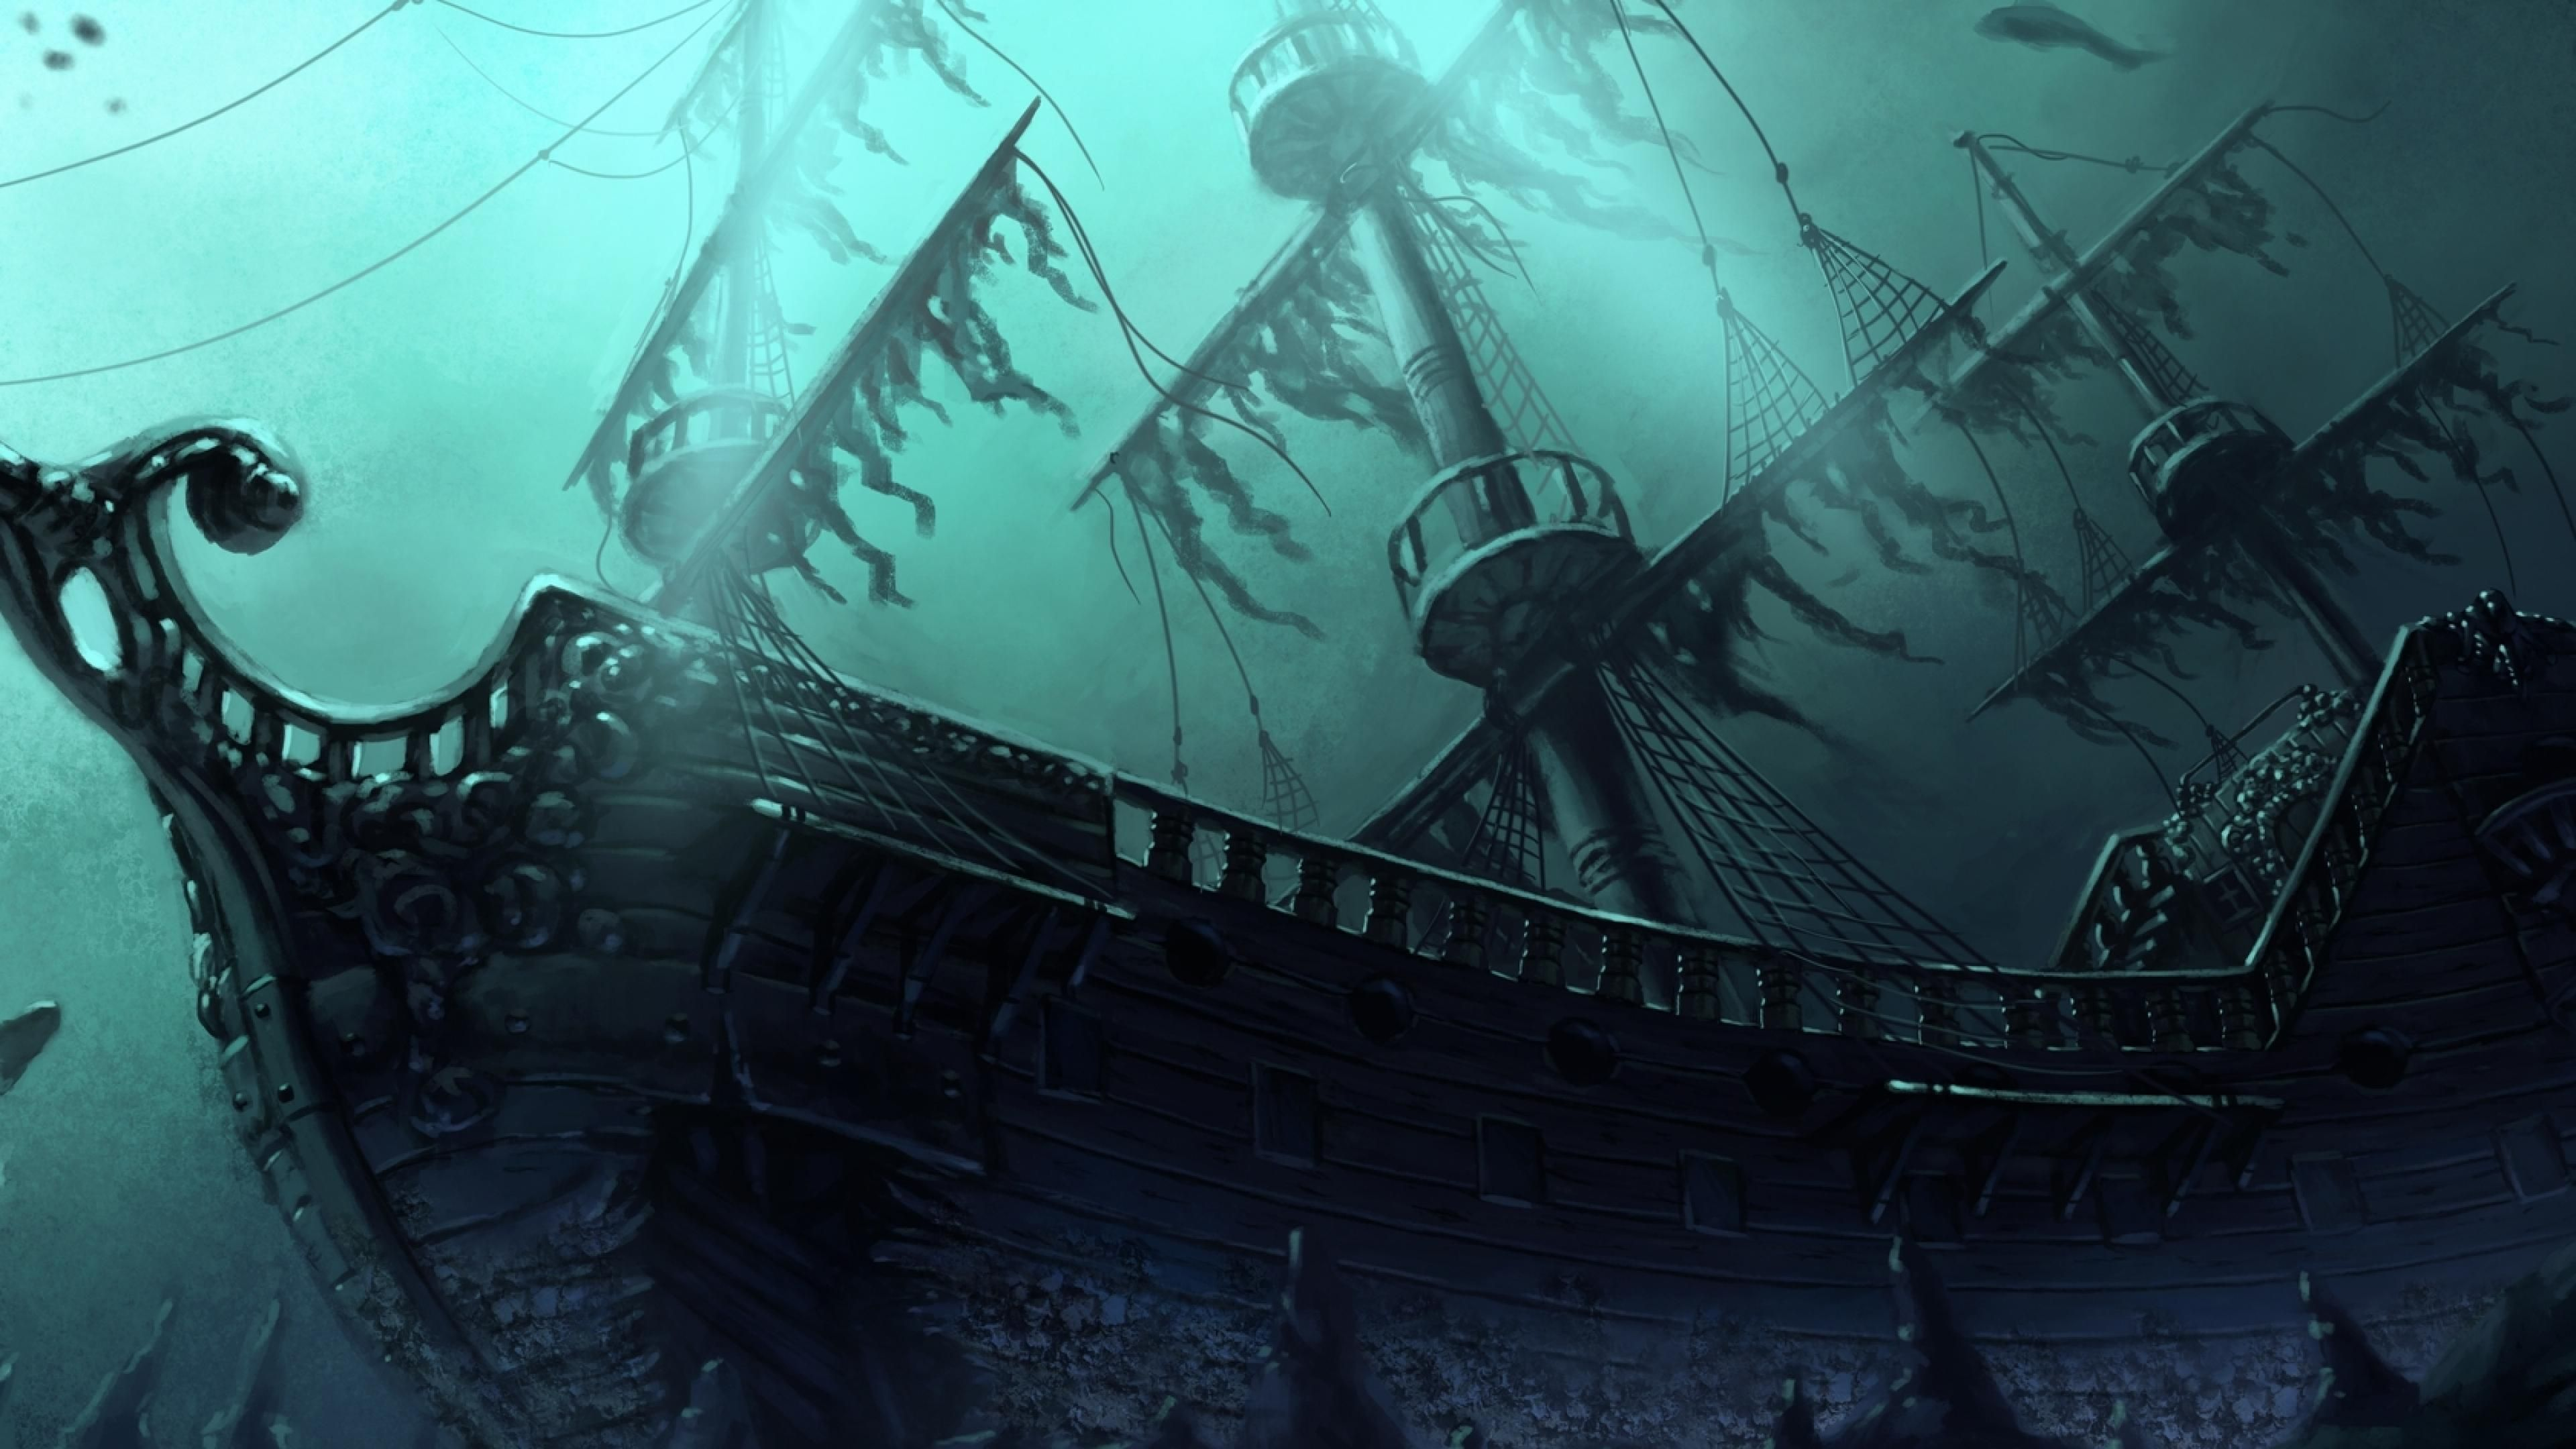 Sunken Ghost Pirate Ship Wallpaper by HD Wallpapers Daily 3840x2160